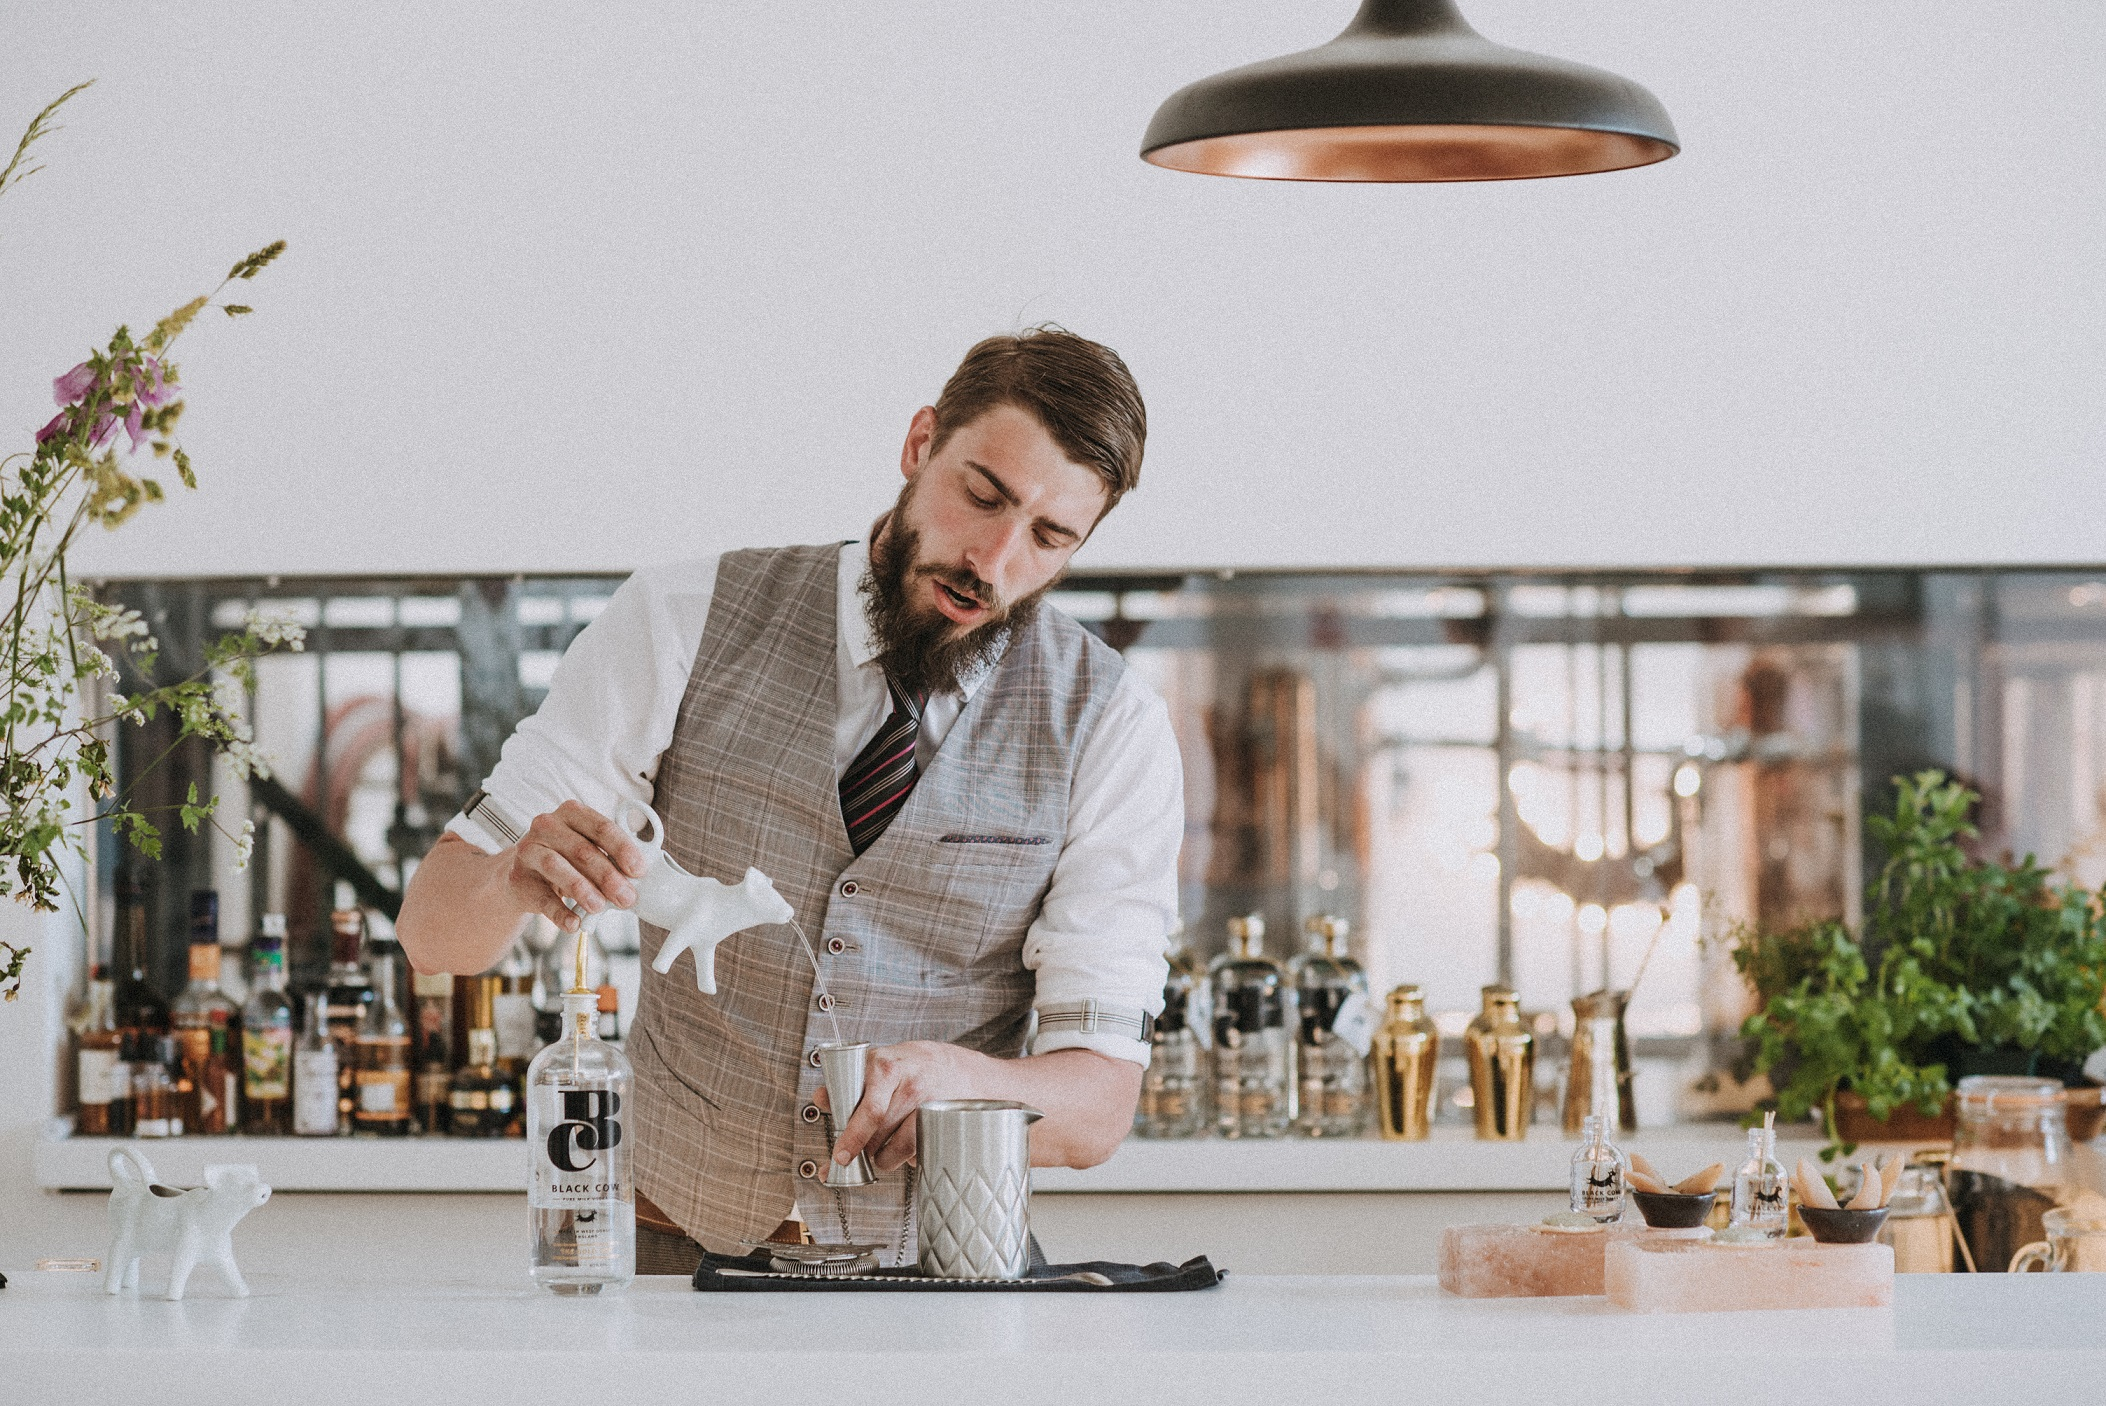 Massiiliano Terrile from London's Duck & Waffle serves up his cocktail, Dictum.